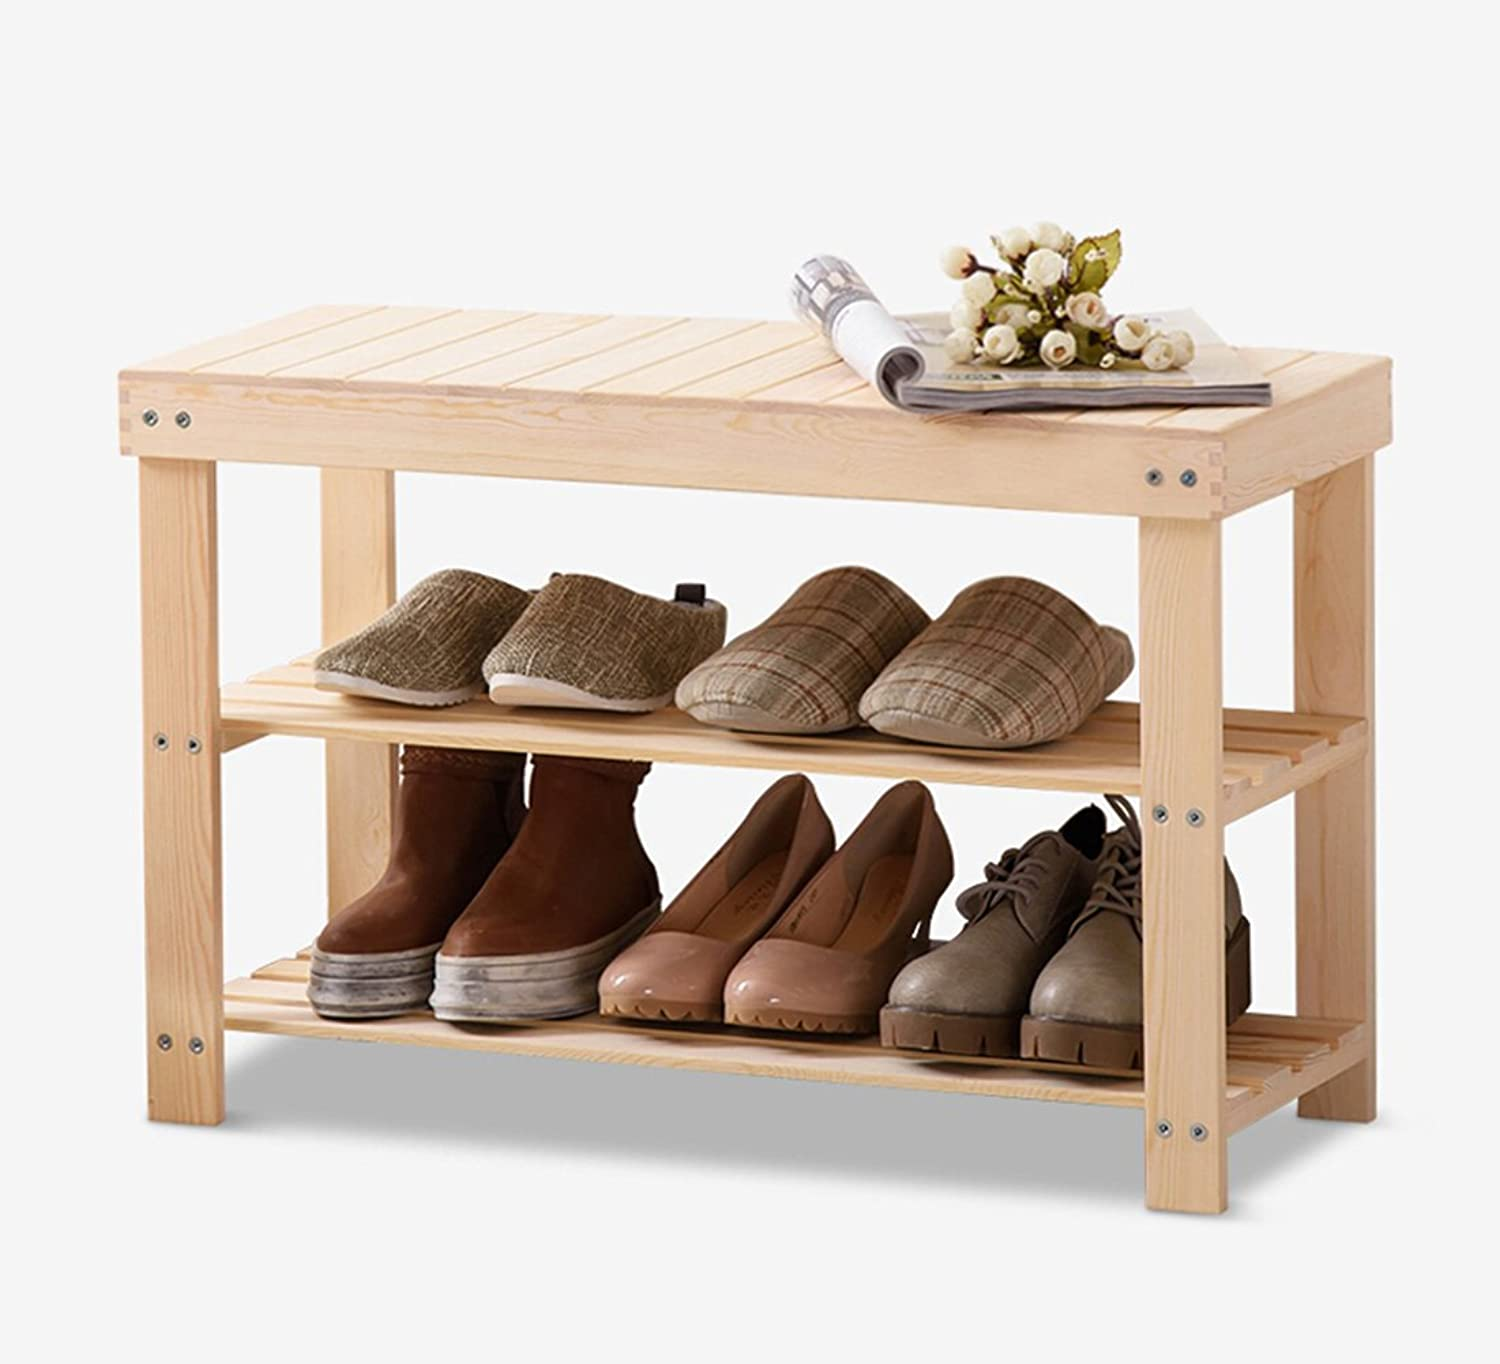 LIQICAI shoes Rack with Seat Natural Pine Wood Multifunction Assemble Easy, Multi-Size Optional (Size   Length70cm)